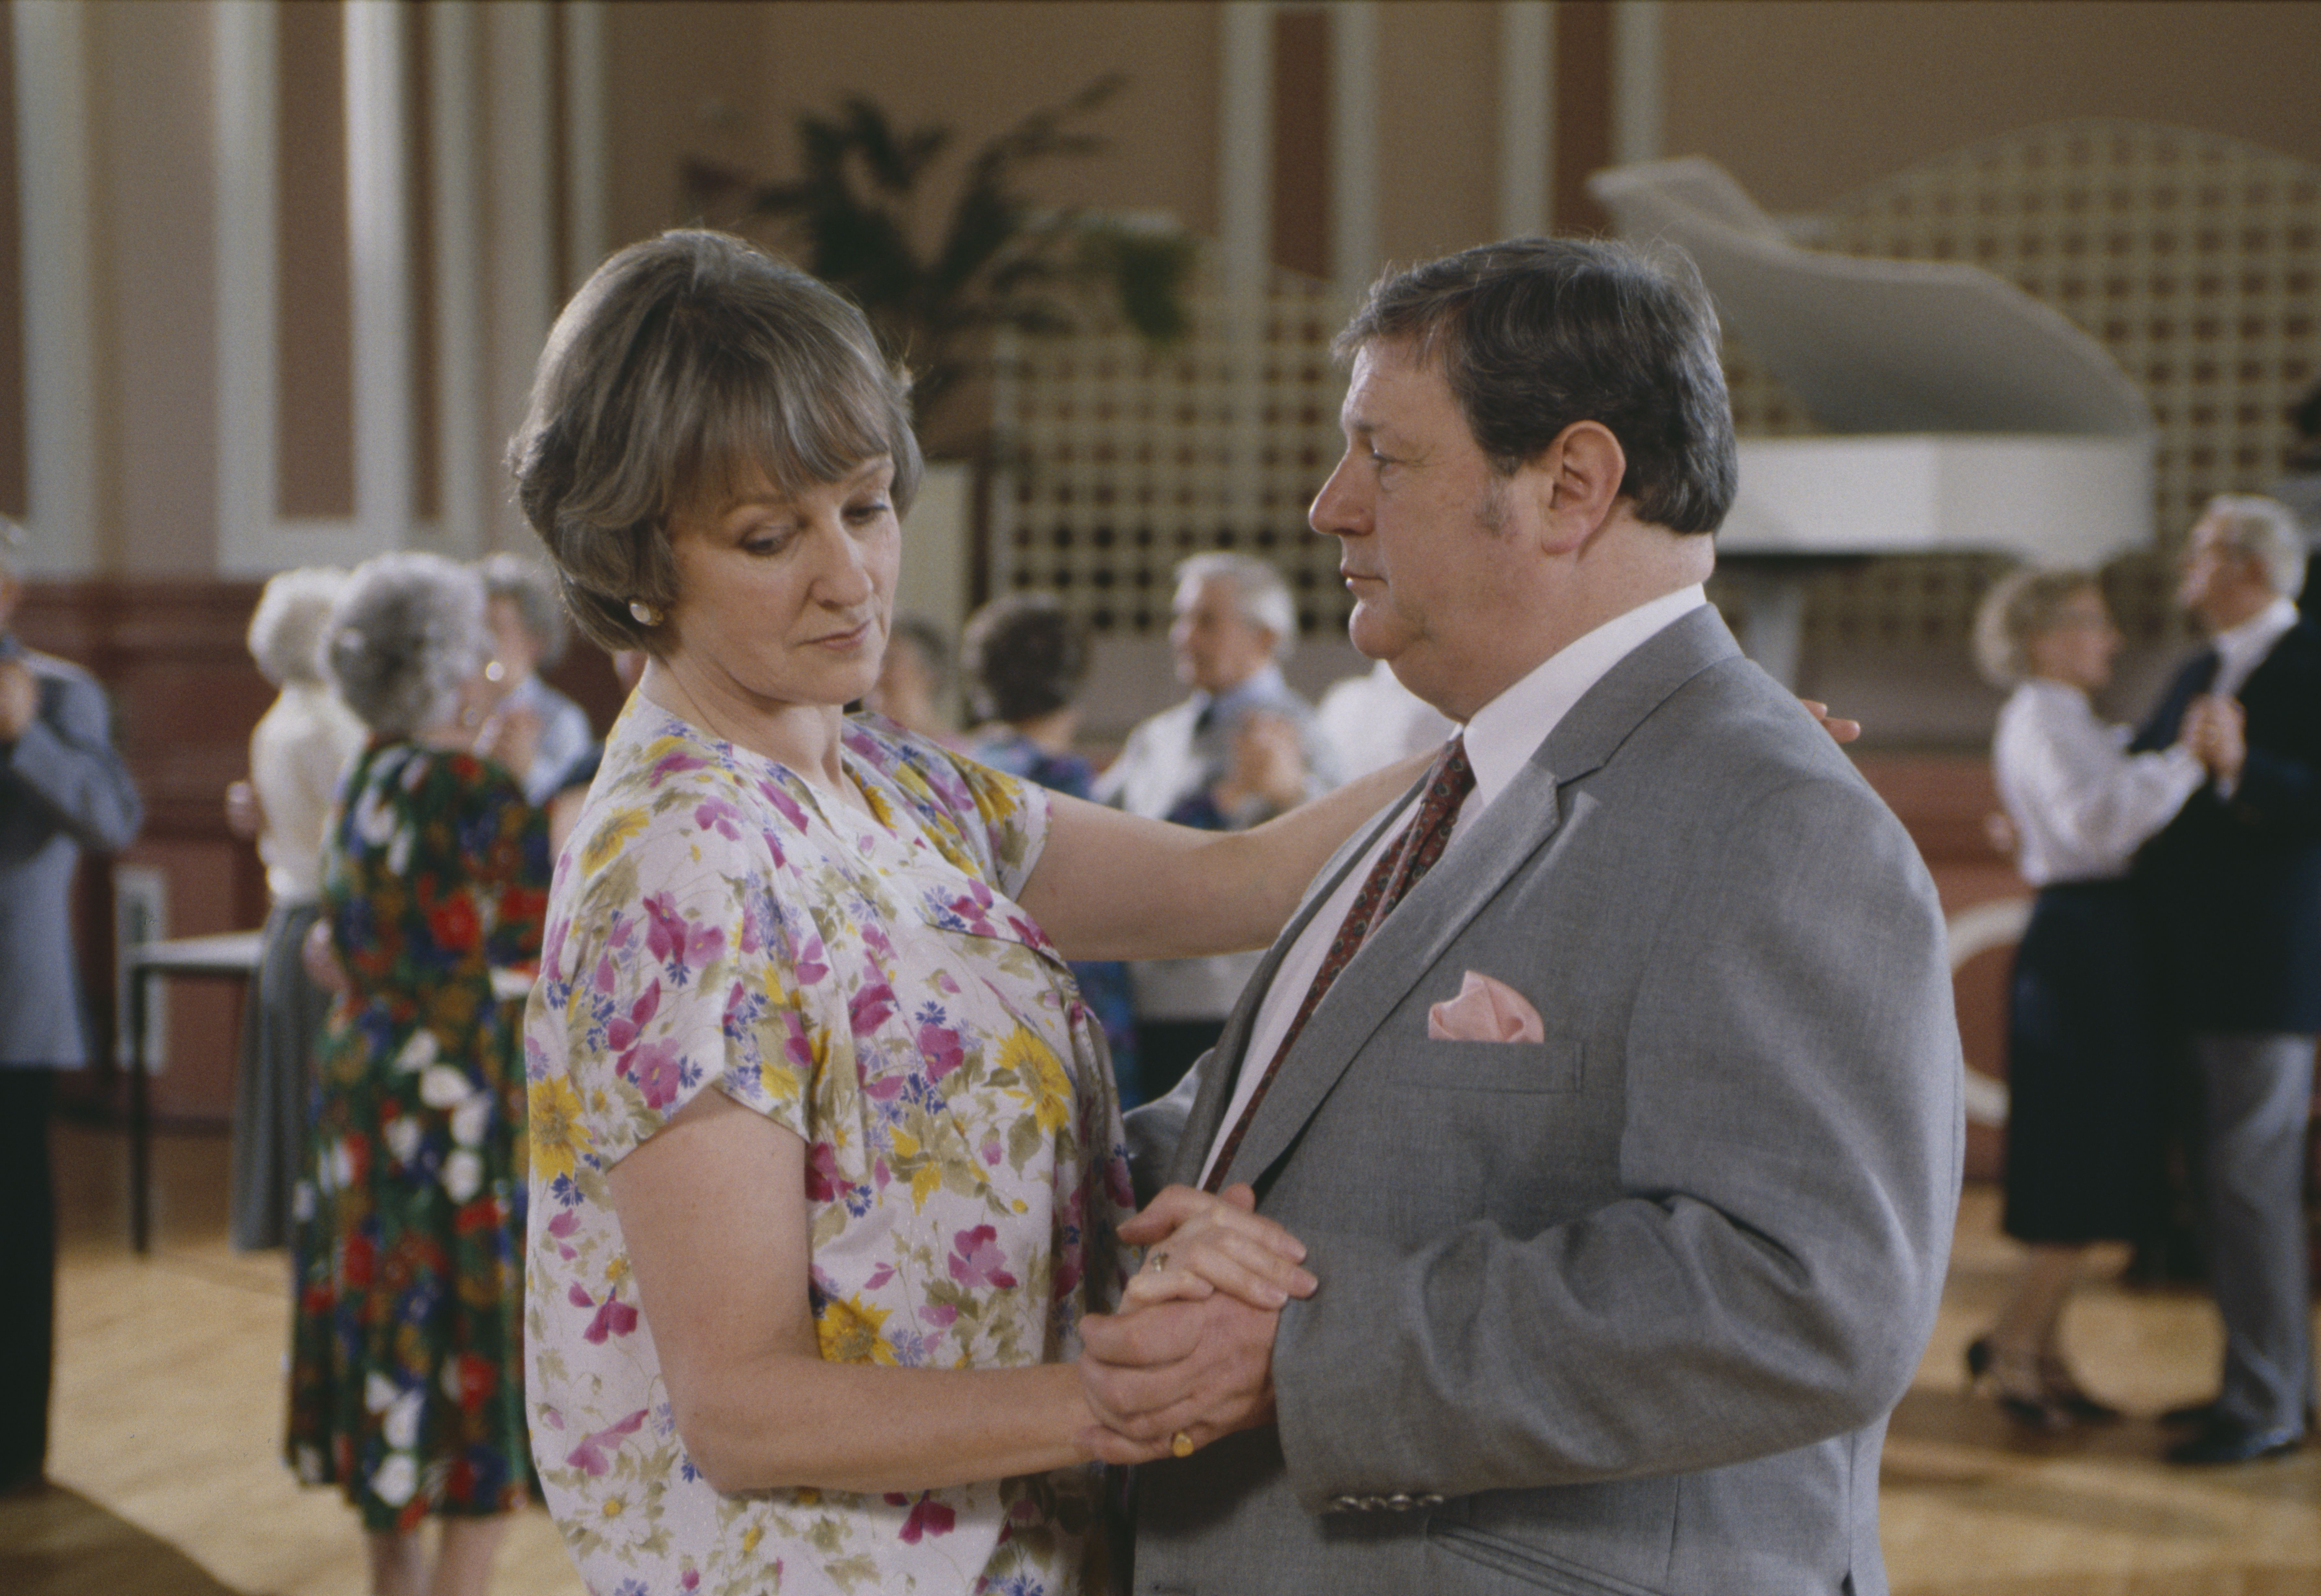 Editorial use only Mandatory Credit: Photo by ITV/Shutterstock (8081420u) Caroline Bates (as Diana Davies) and Richard Thorp (as Alan Turner) as Mrs Davies and Turner visit a tea dance (Ep 1762 - 6th May 1993) 'Emmerdale' TV Series - 06 May 1993 Emmerdale Farm is a long-running British soap opera set in Emmerdale, a fictional village in the Yorkshire Dales. Created by Kevin Laffan, it first broadcast on 16 October 1972 and produced by ITV Yorkshire.